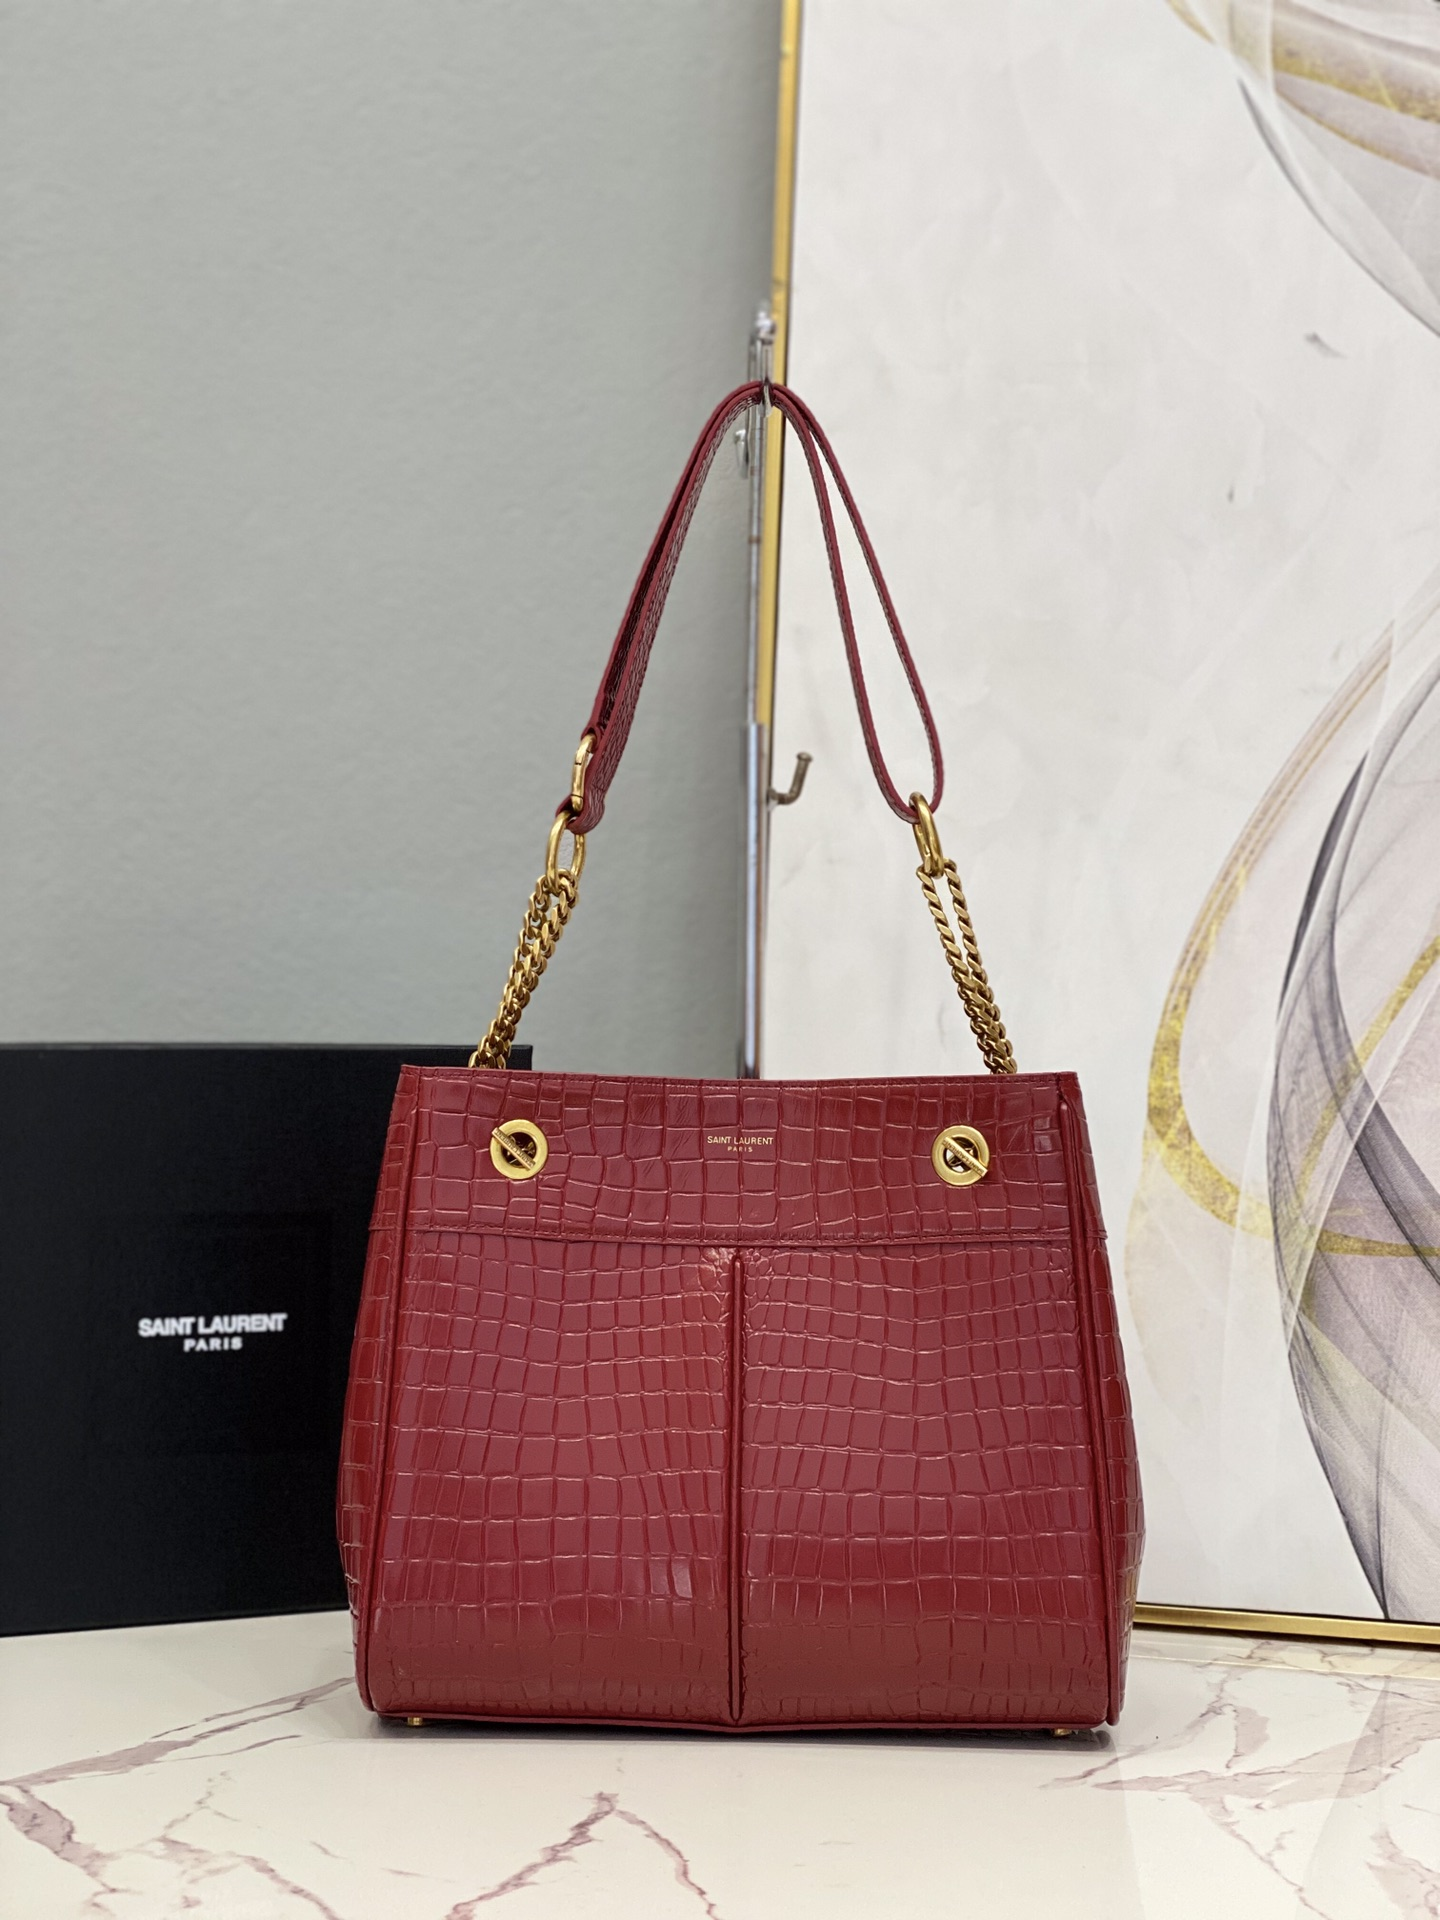 2021 saint laurent claude shopping bag in crocodile-embossed leather red